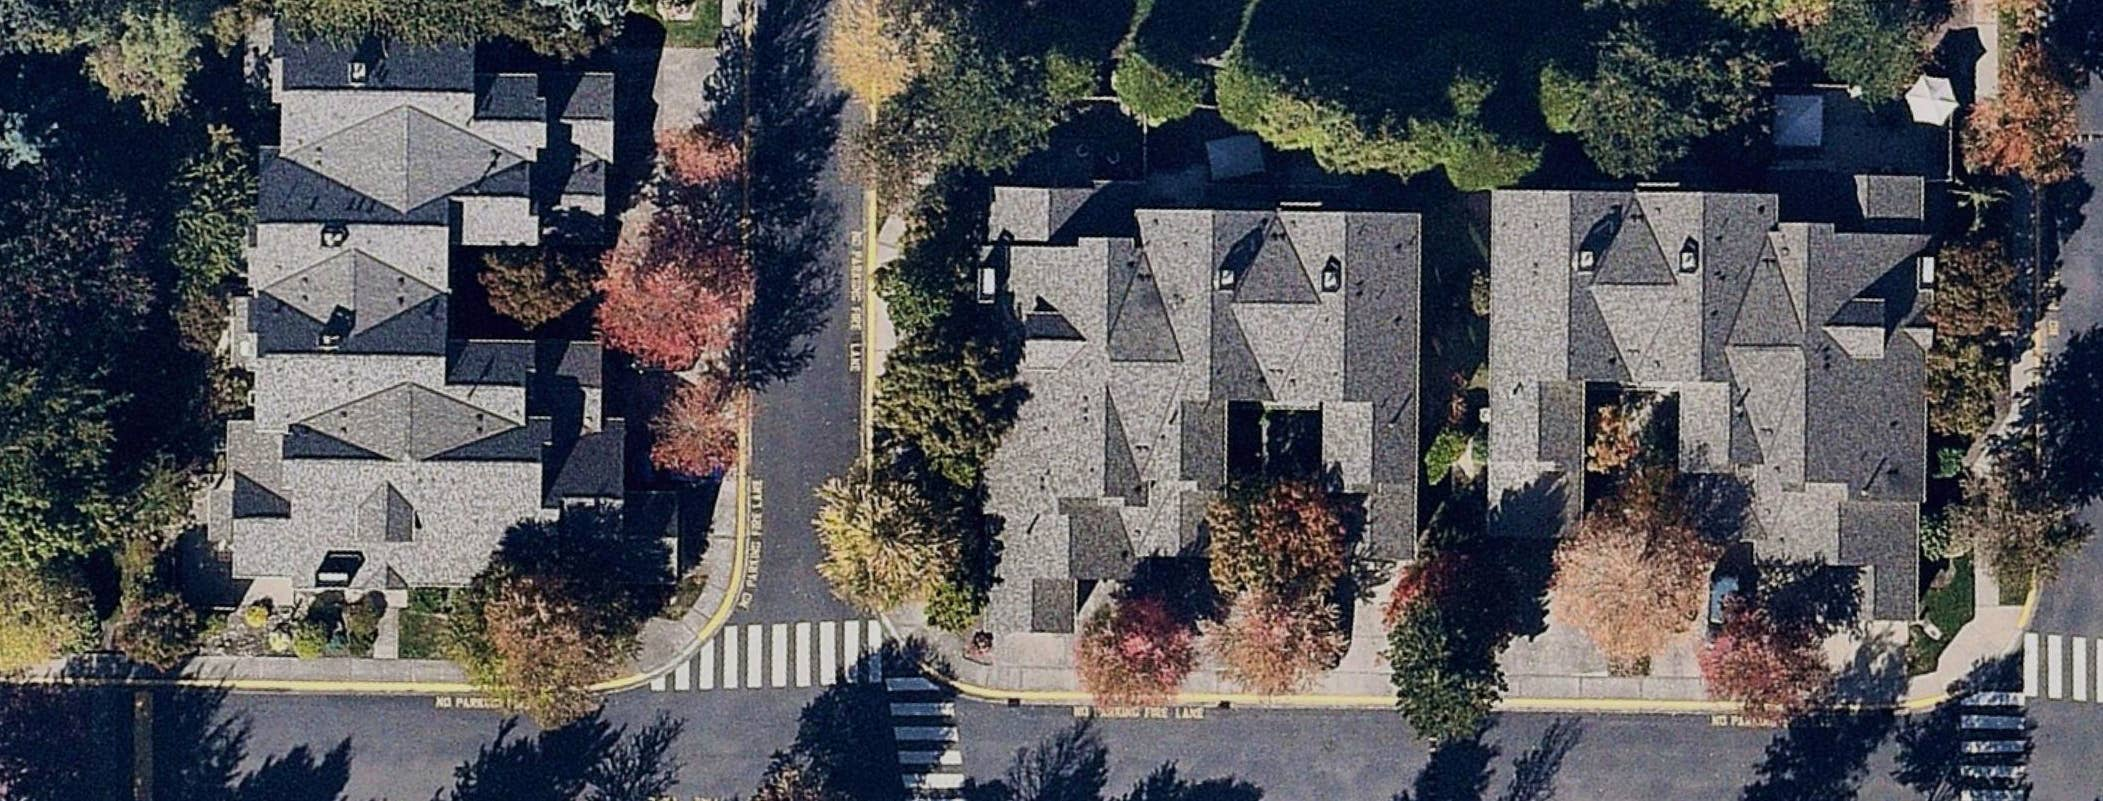 aerial, seasonal, roofing, Redmond, WA, 2018 September 25